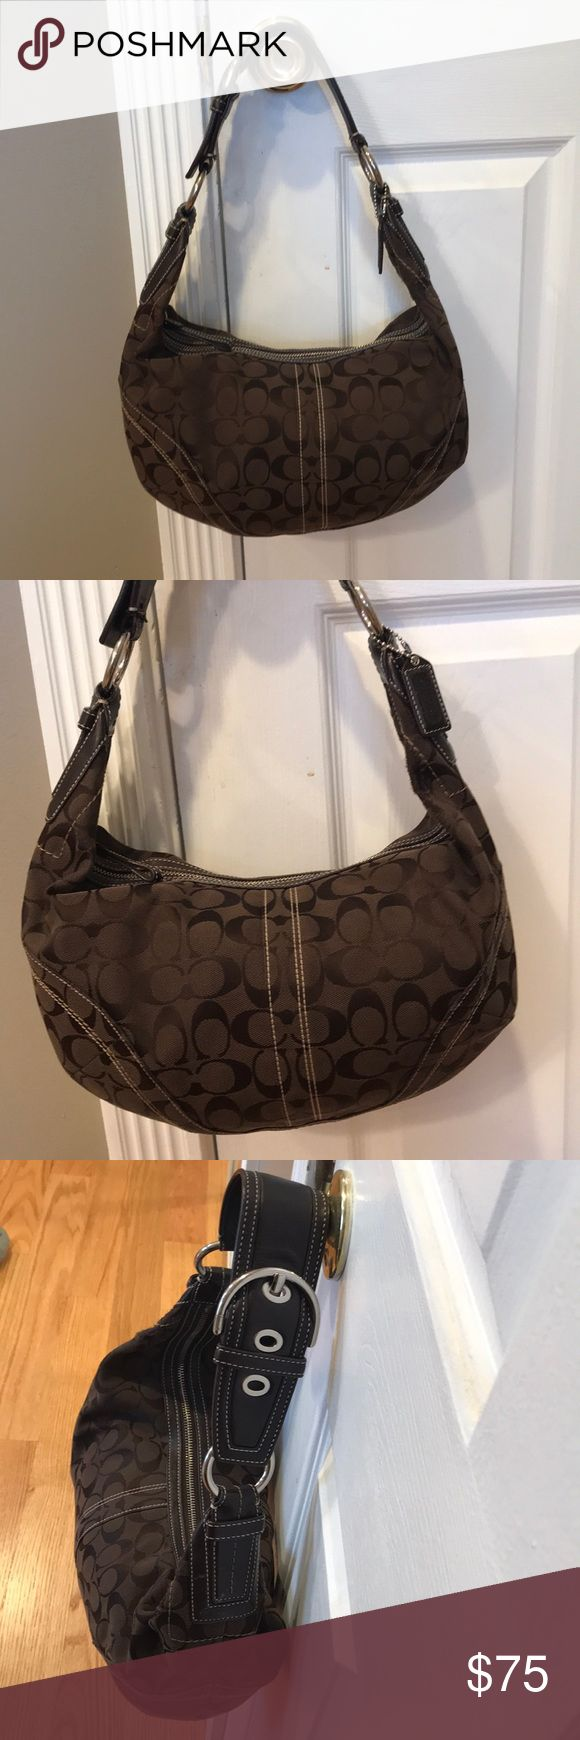 """Authentic Coach Jacquard Hobo Shoulder Bag Authentic Coach Jacquard Hobo Shoulder Bag  Dark brown interior. Signature Jacquard fabric with leather trim, Zipper interior pocket, closed top with zipper.   Hardly ever worn, pristine condition.   Comes in original duster bag.   9"""" x 16"""", Strap drop 10"""" Coach Bags Hobos"""